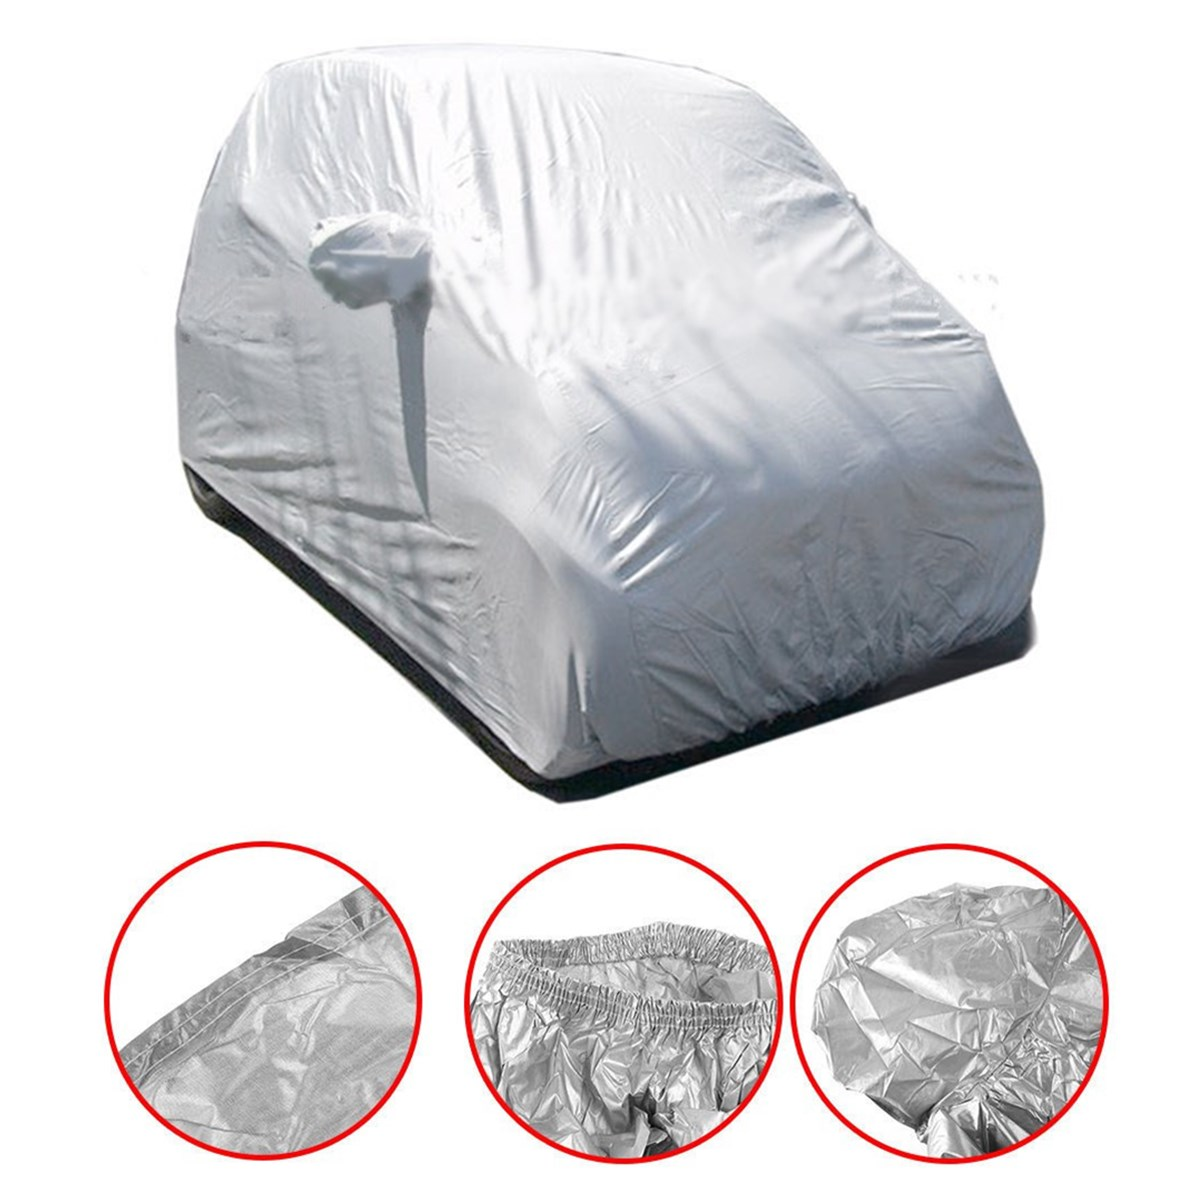 2.7X1.7X1.6m Car Cover Sun Rain Dust Proof Waterproof Shield For Benz Smart Fortwo Auto Car Outdoor Protector Cover